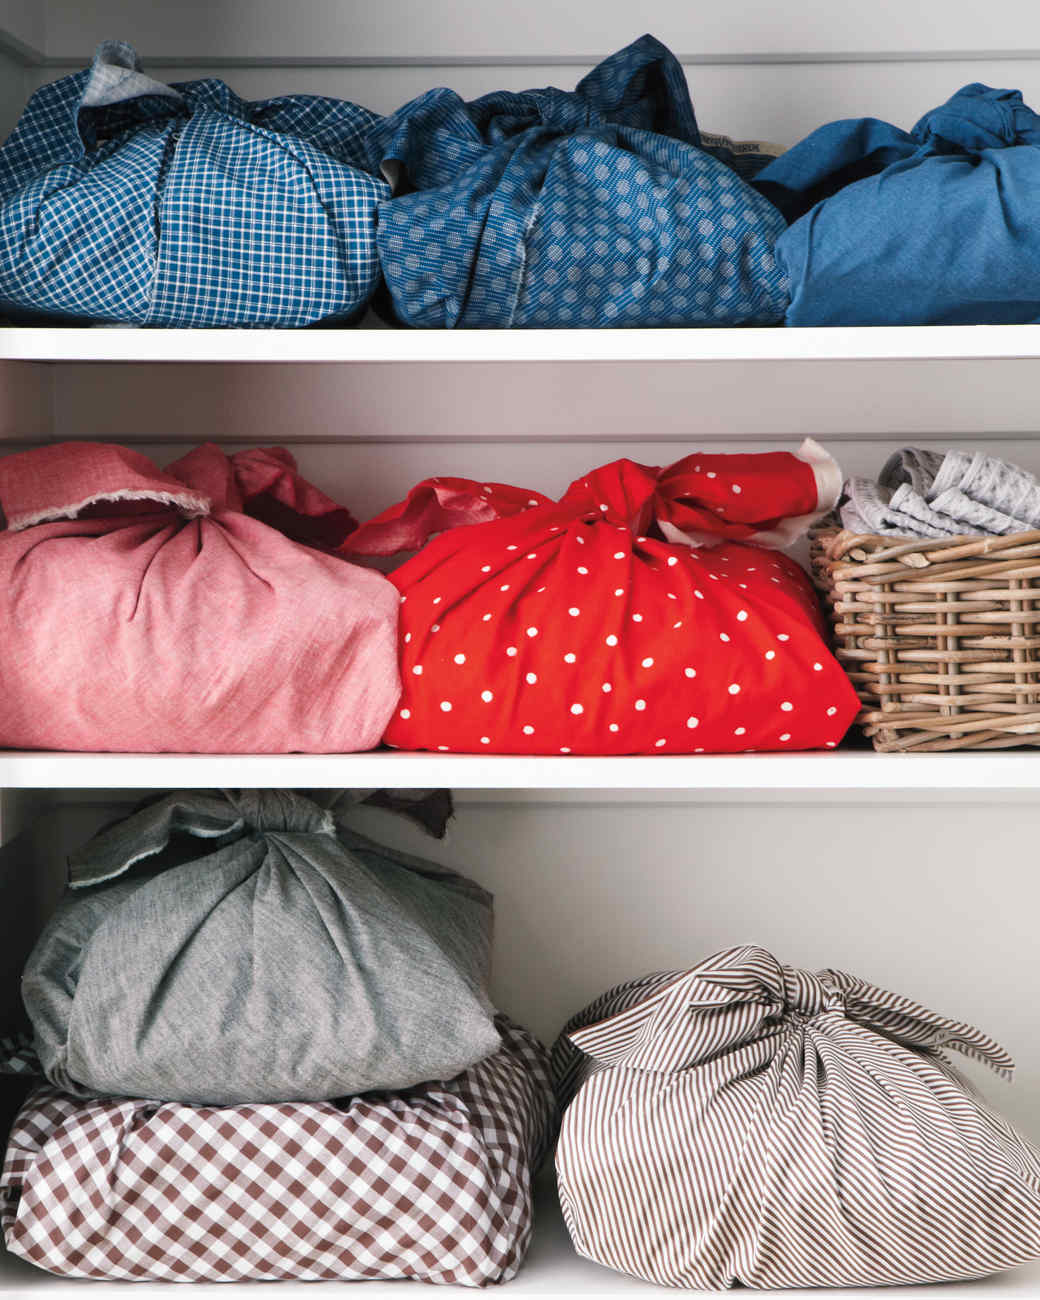 Organized Bed Linens